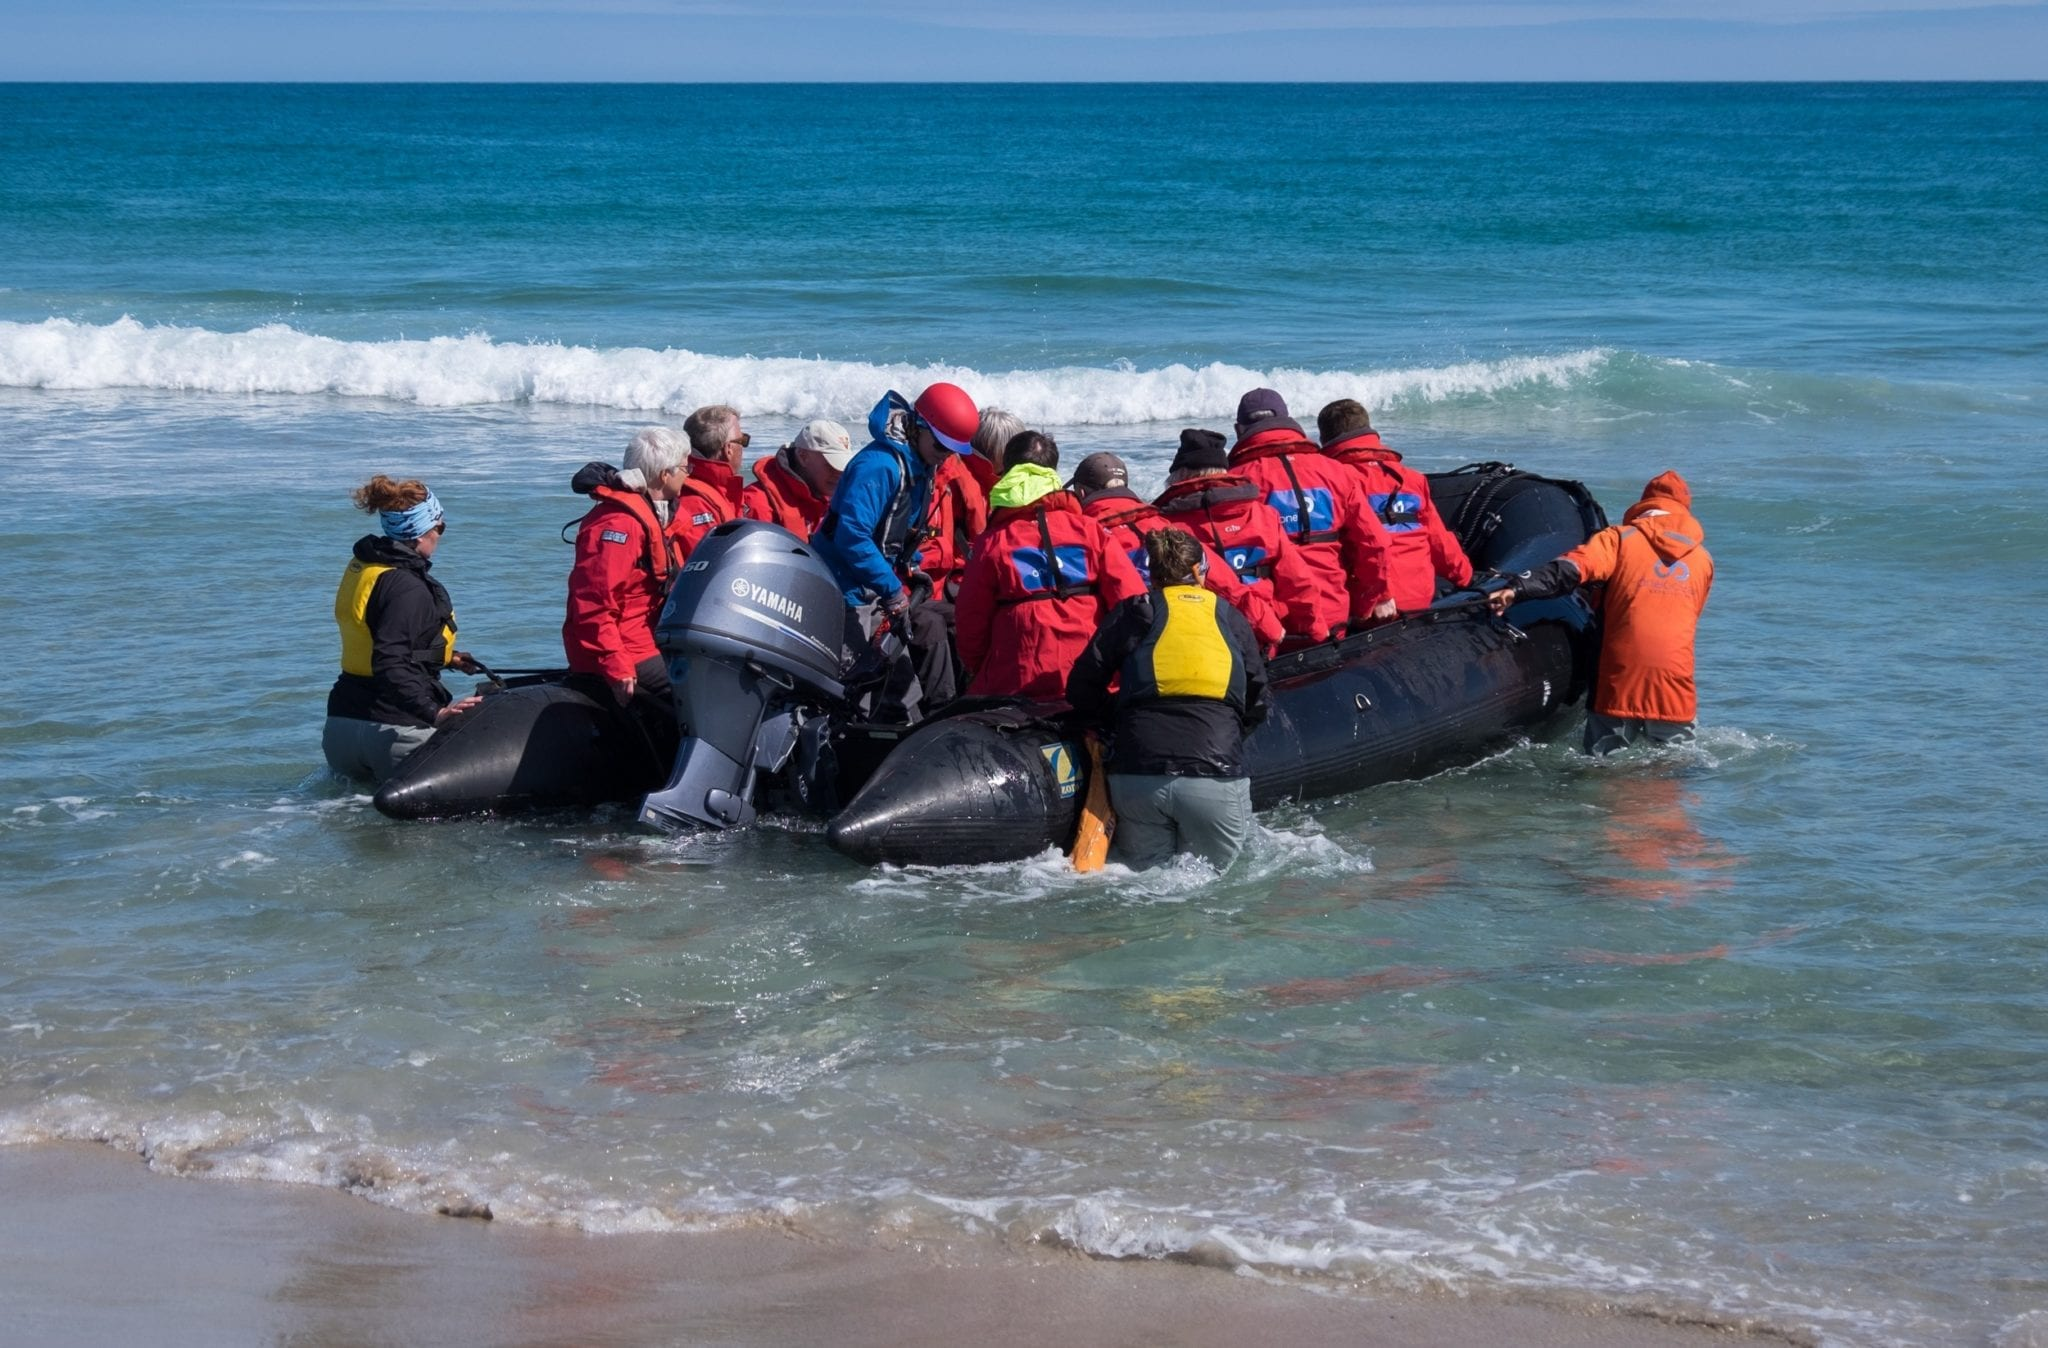 A zodiac full of people launches into the bright blue ocean off Sable Island.